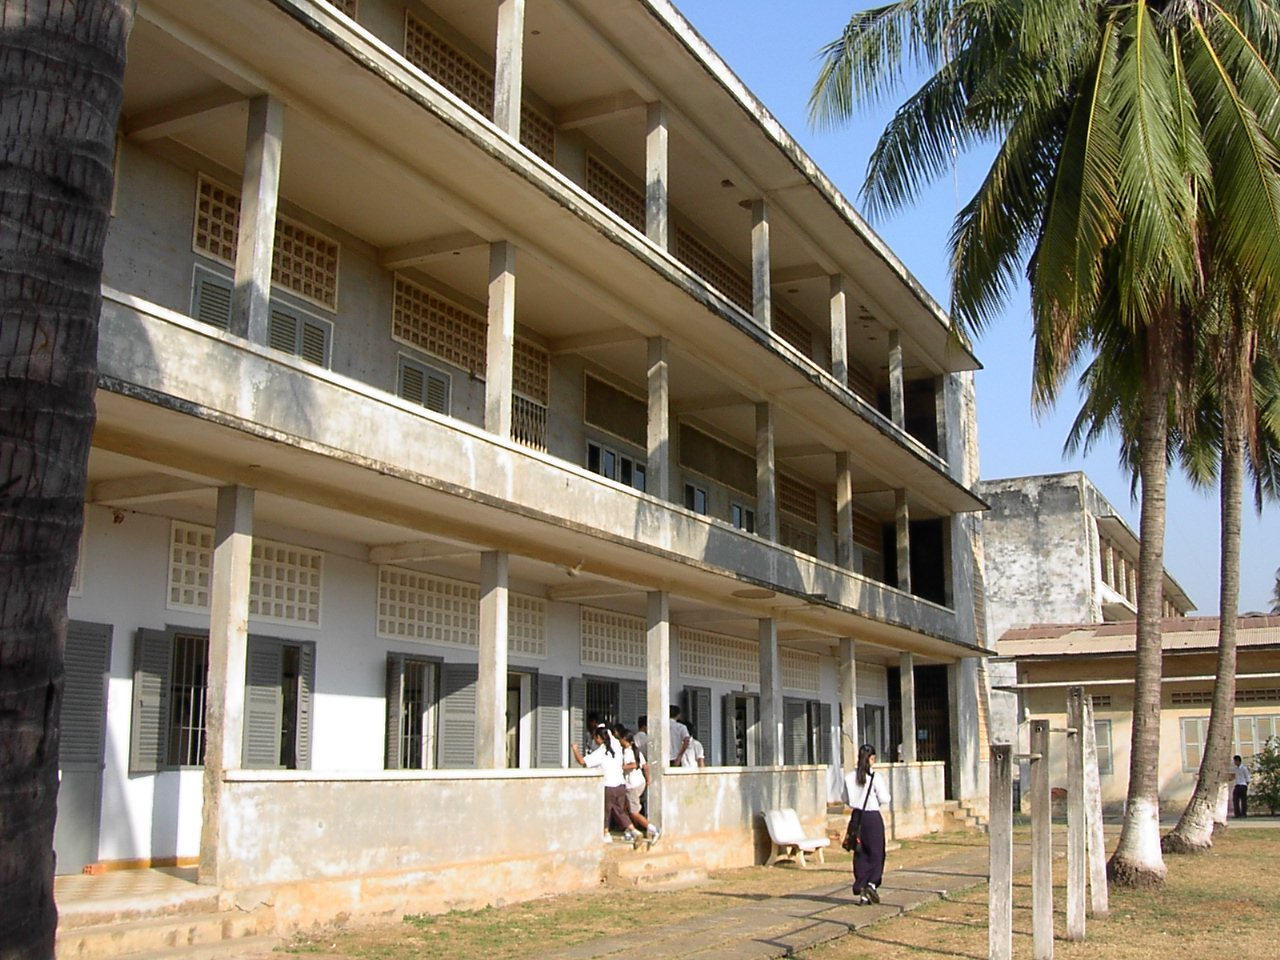 Tuol Sleng Genocide Museum  Wikipedia